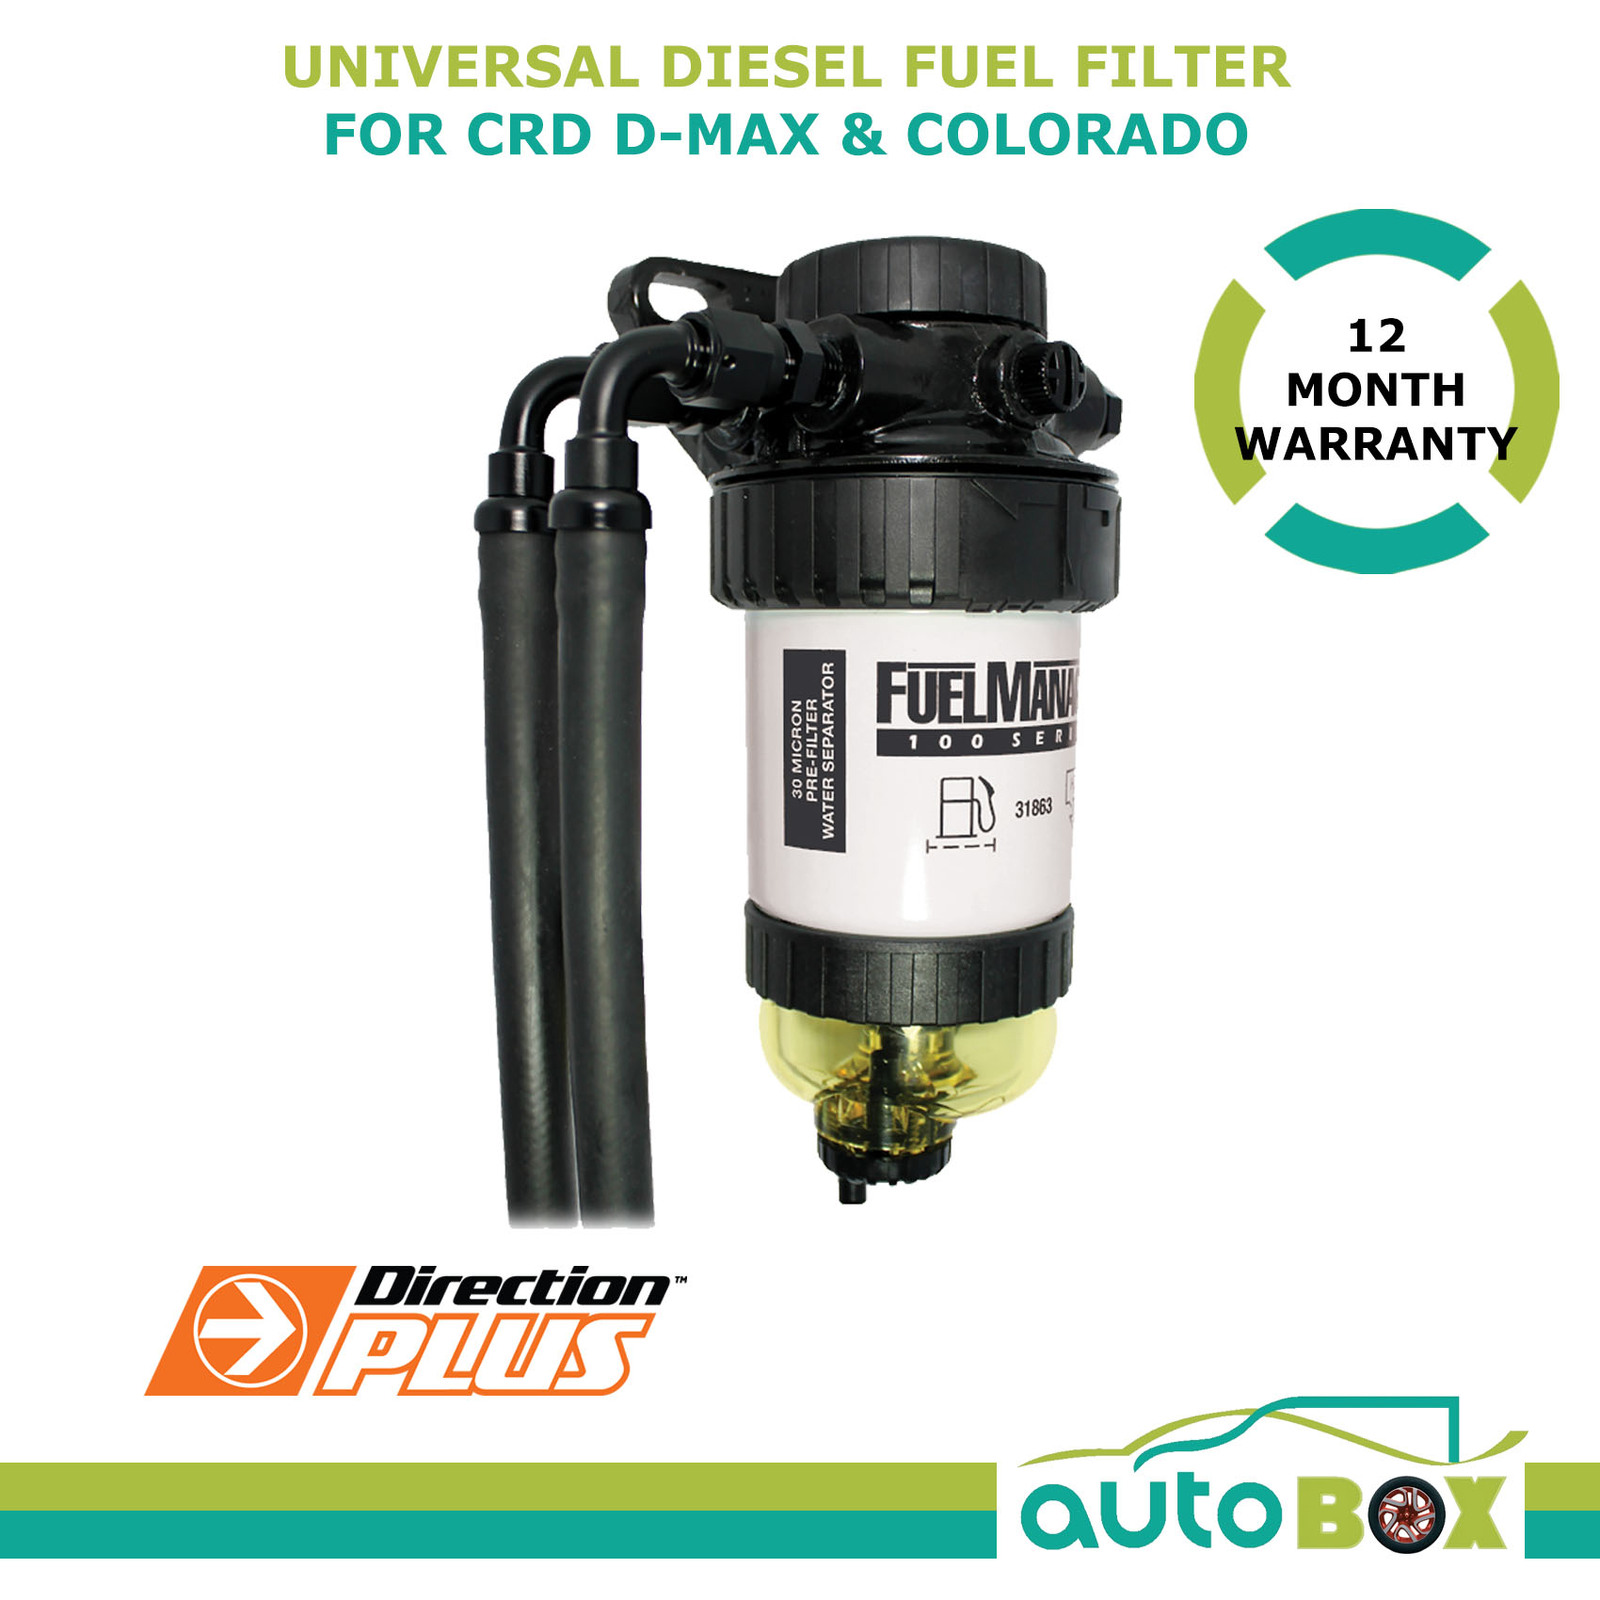 Diesel fuel Filter / Water Separator Universal Pre-Filter - CRD D-Max  Colorado